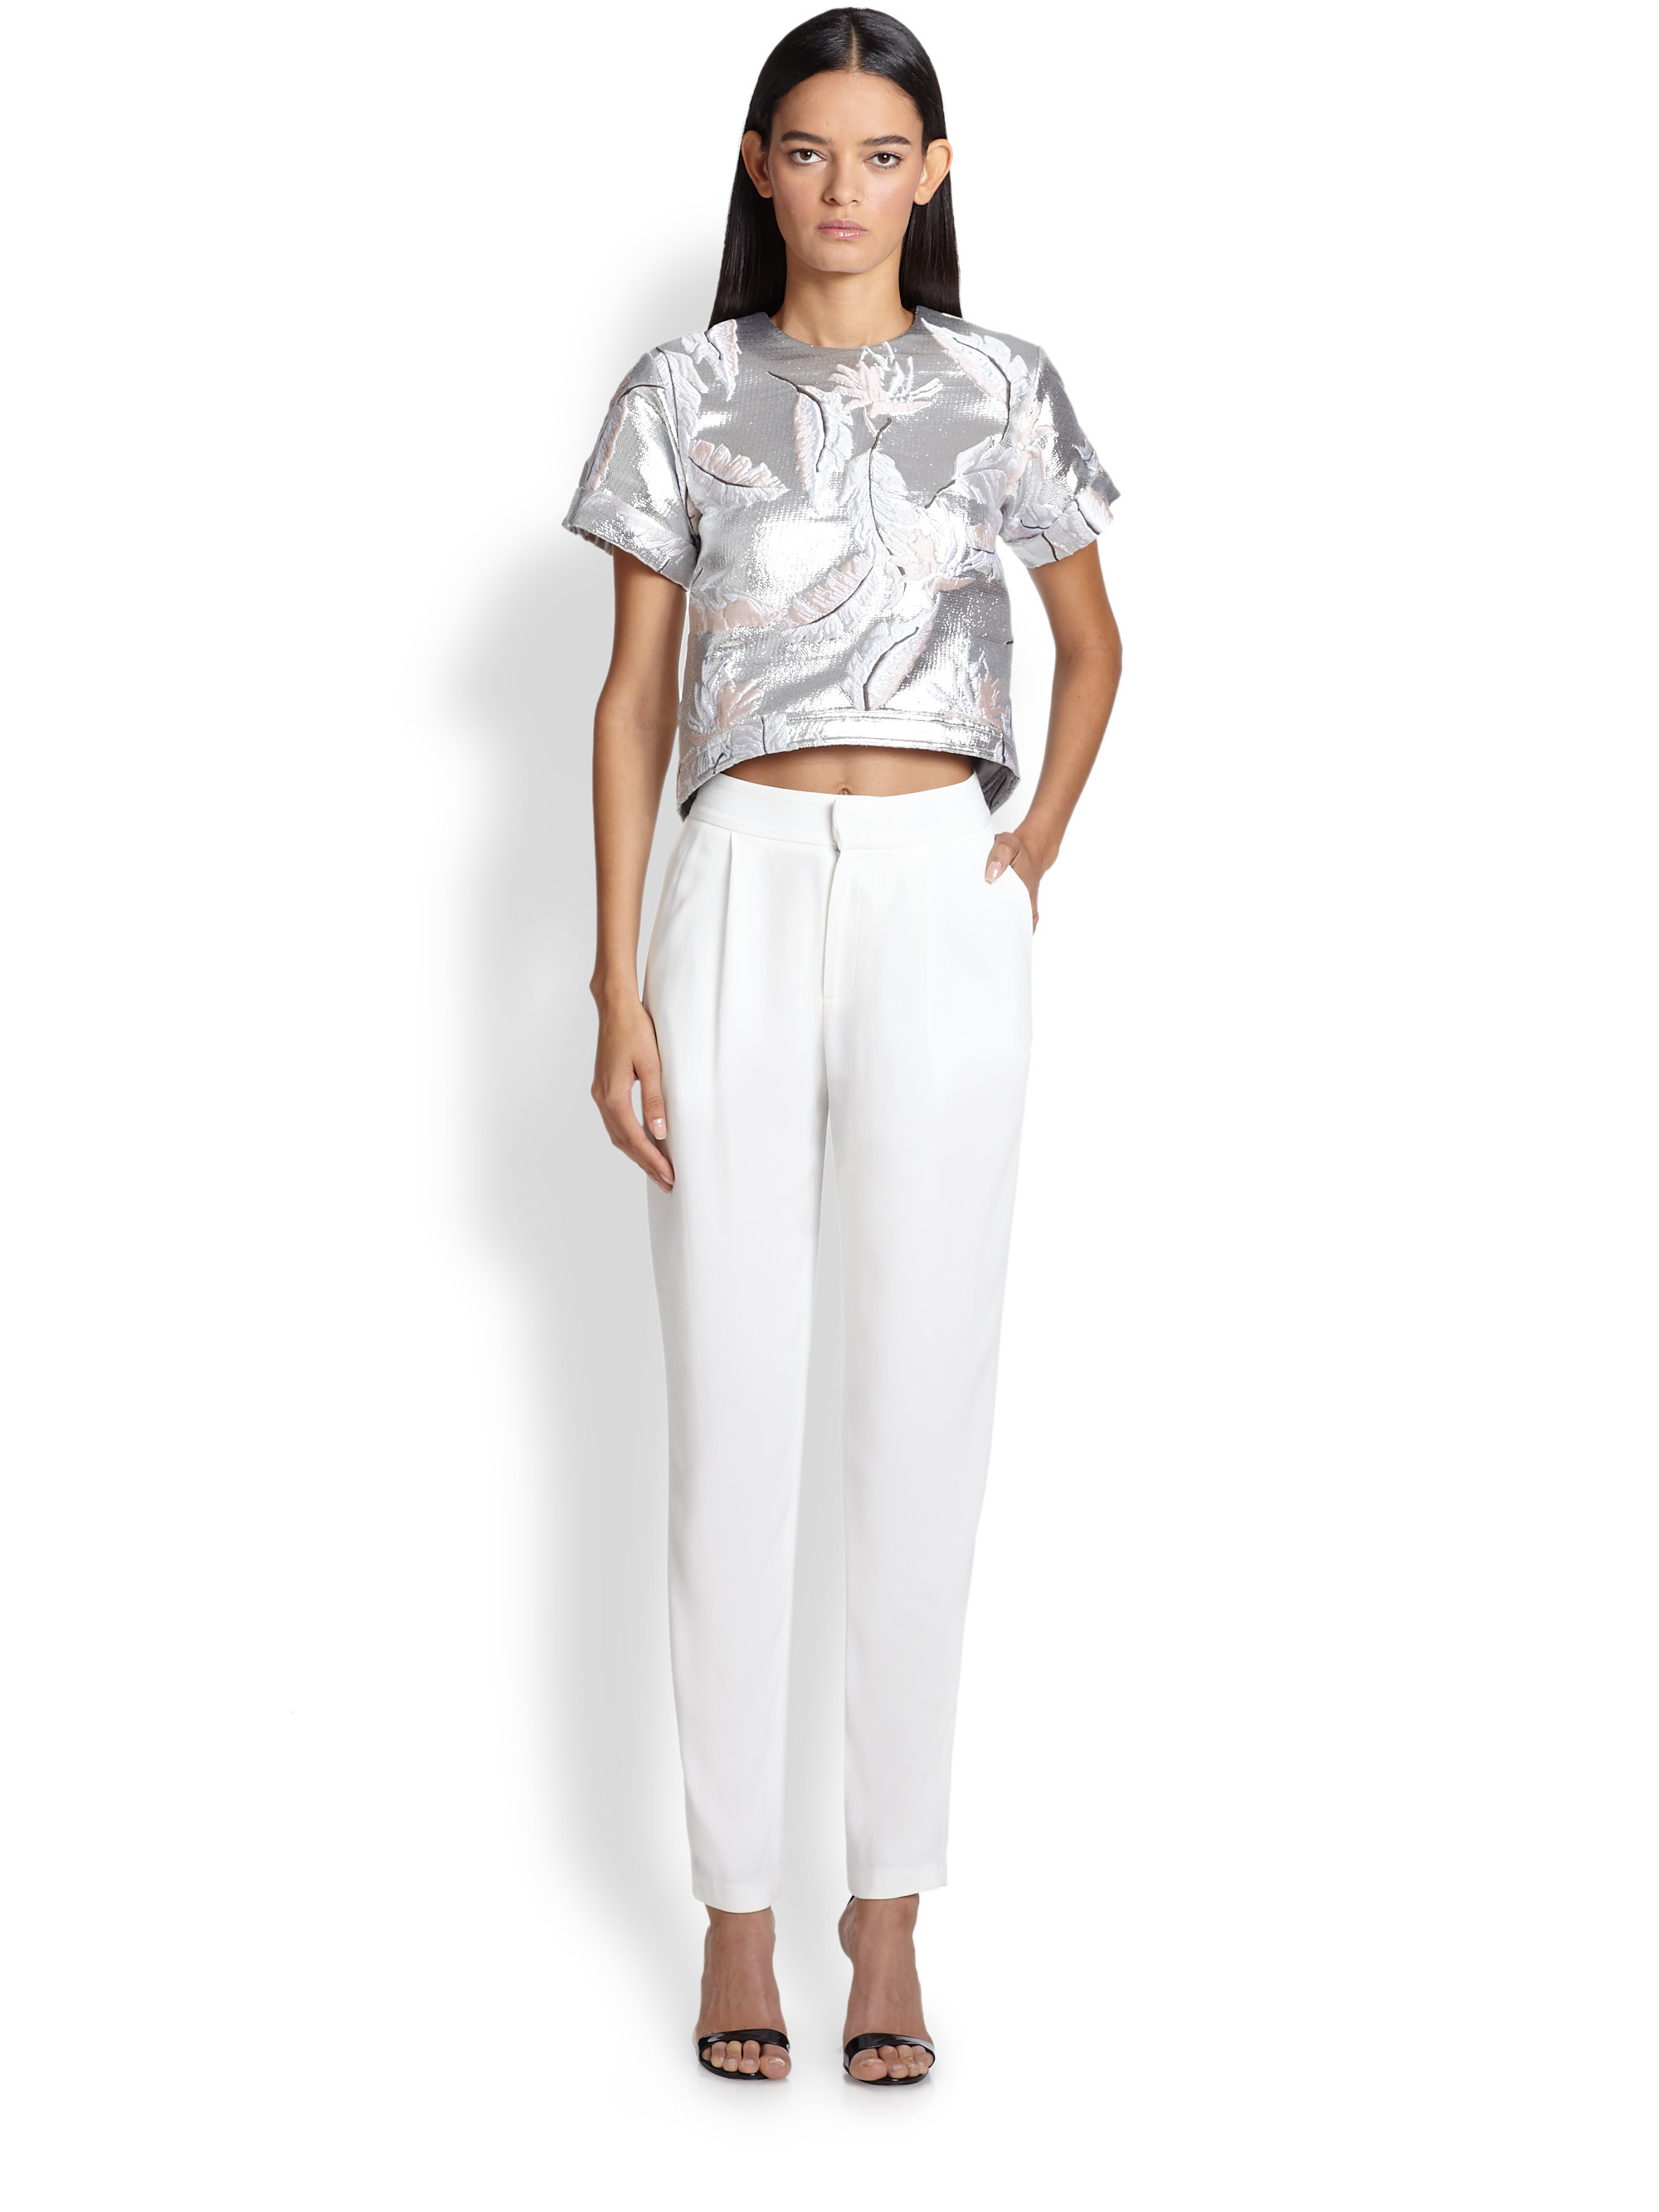 Lyst adam lippes embroidered jacquard top in metallic for Adam lippes women s long sleeve vee t shirt